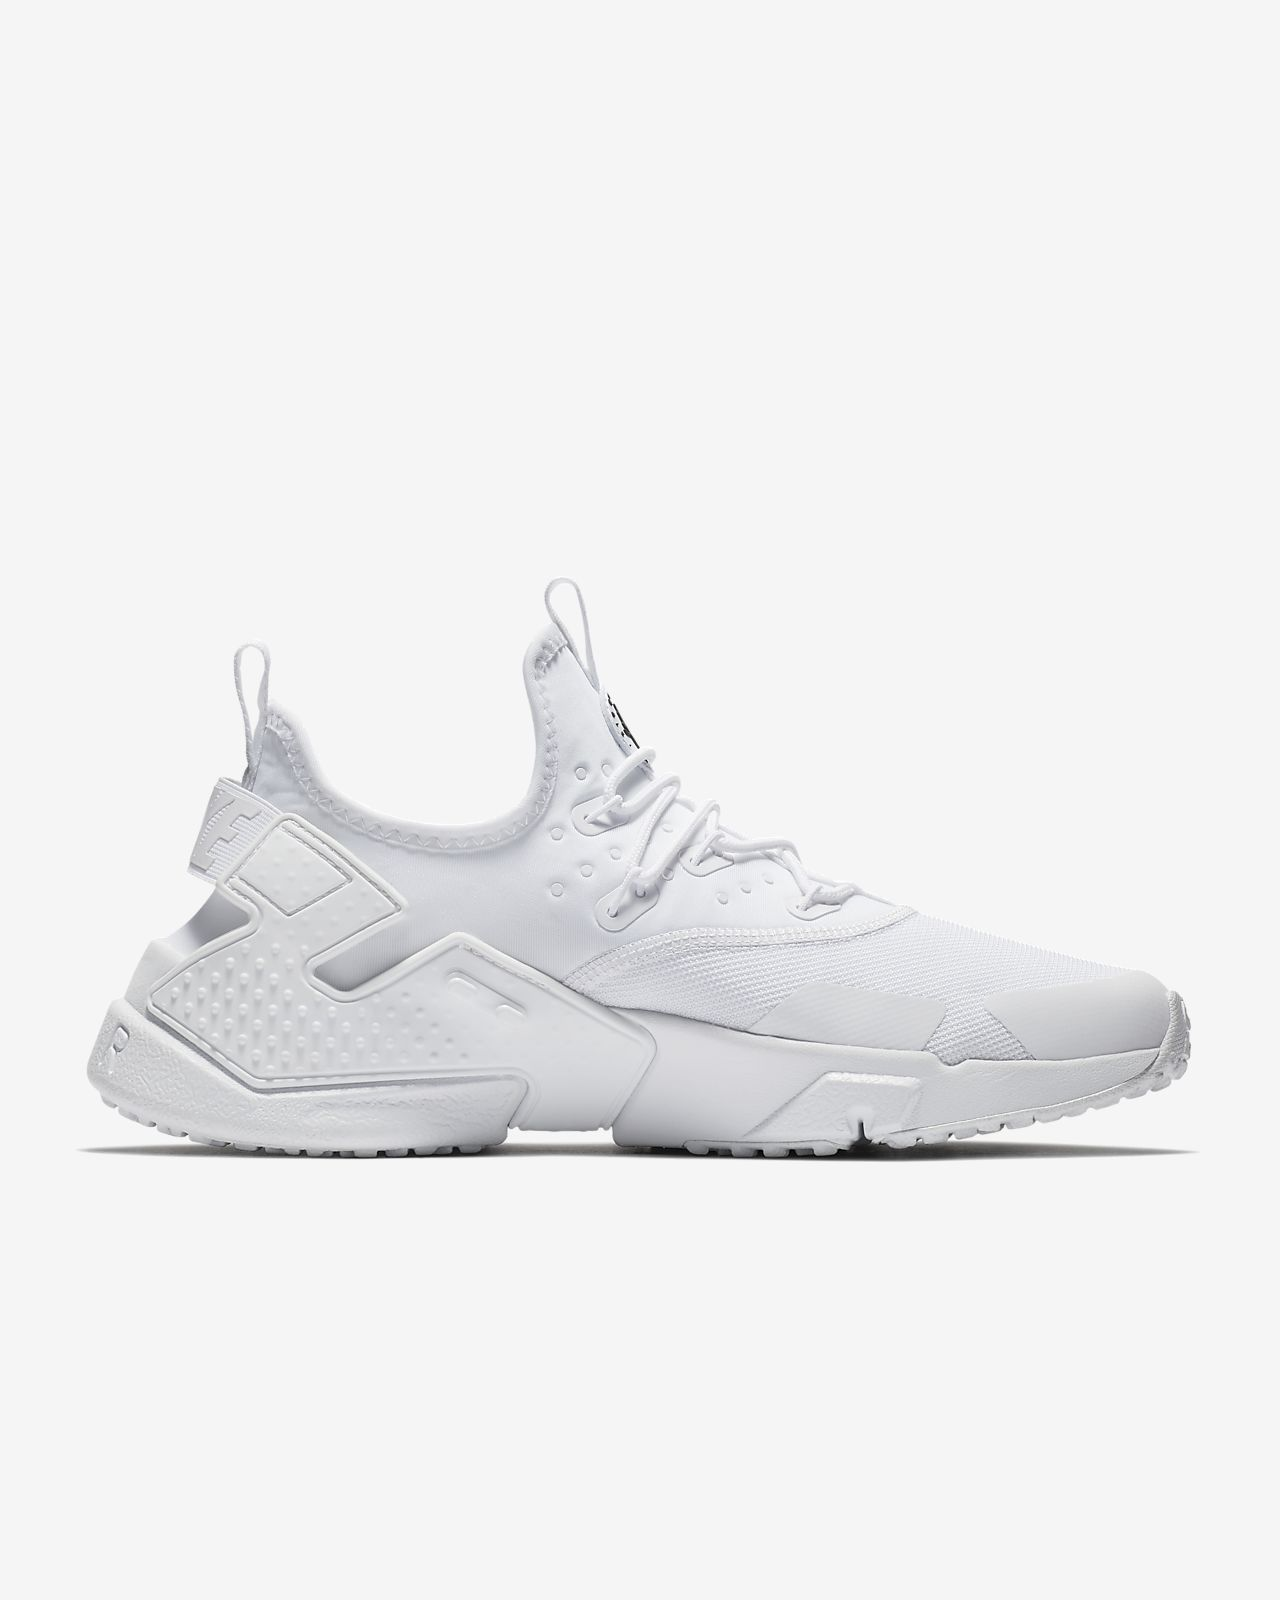 official photos 5686a 098a7 ... Nike Air Huarache Drift Men s Shoe